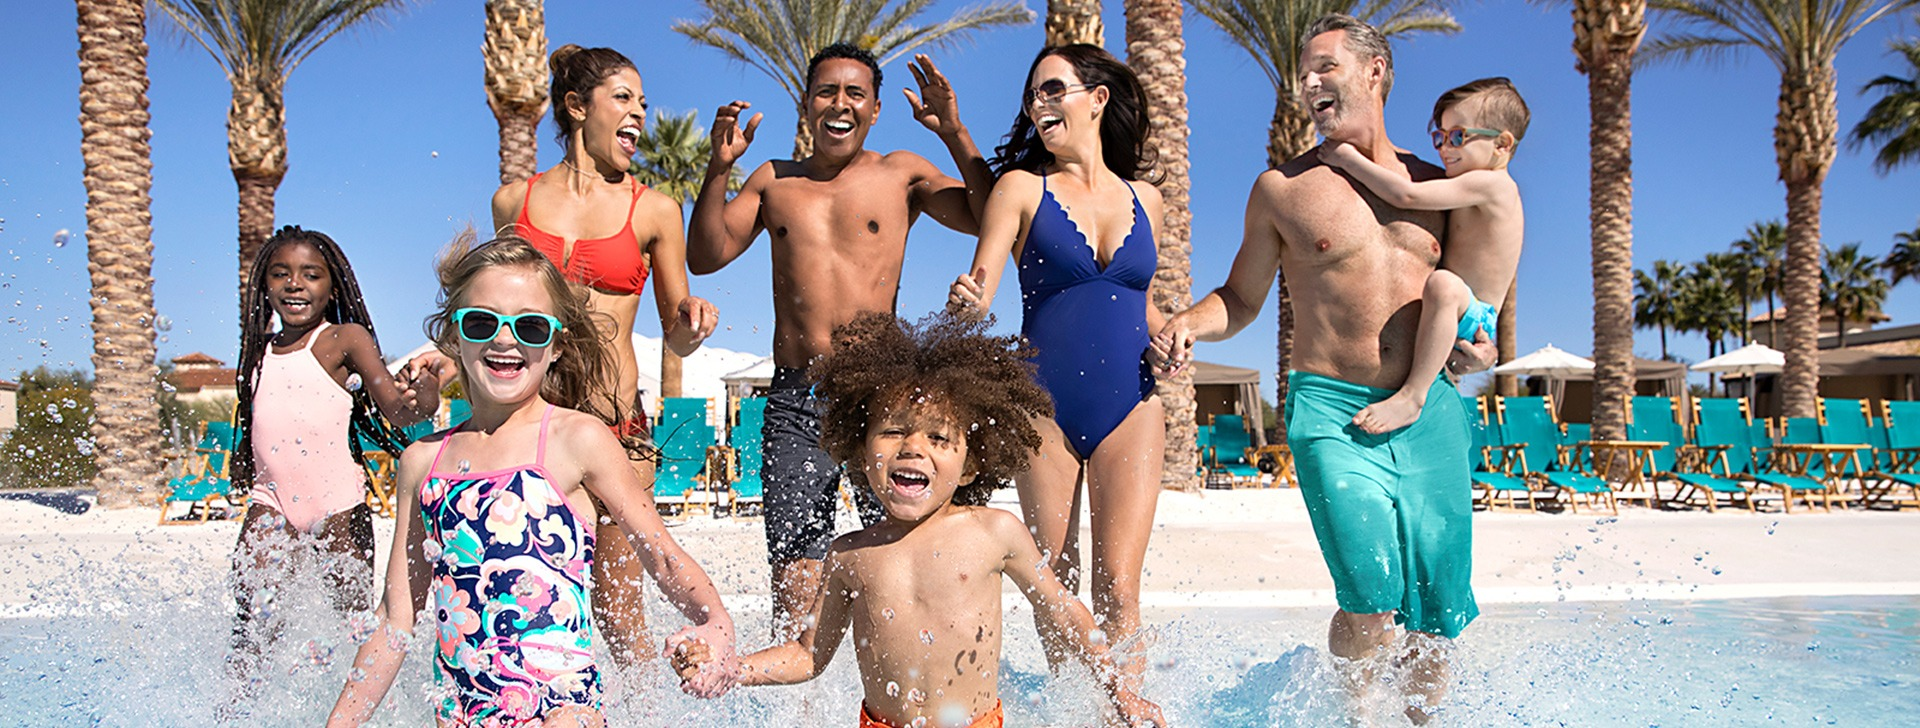 Enjoy With Family at Fairmont Scottsdale Princess, Arizona